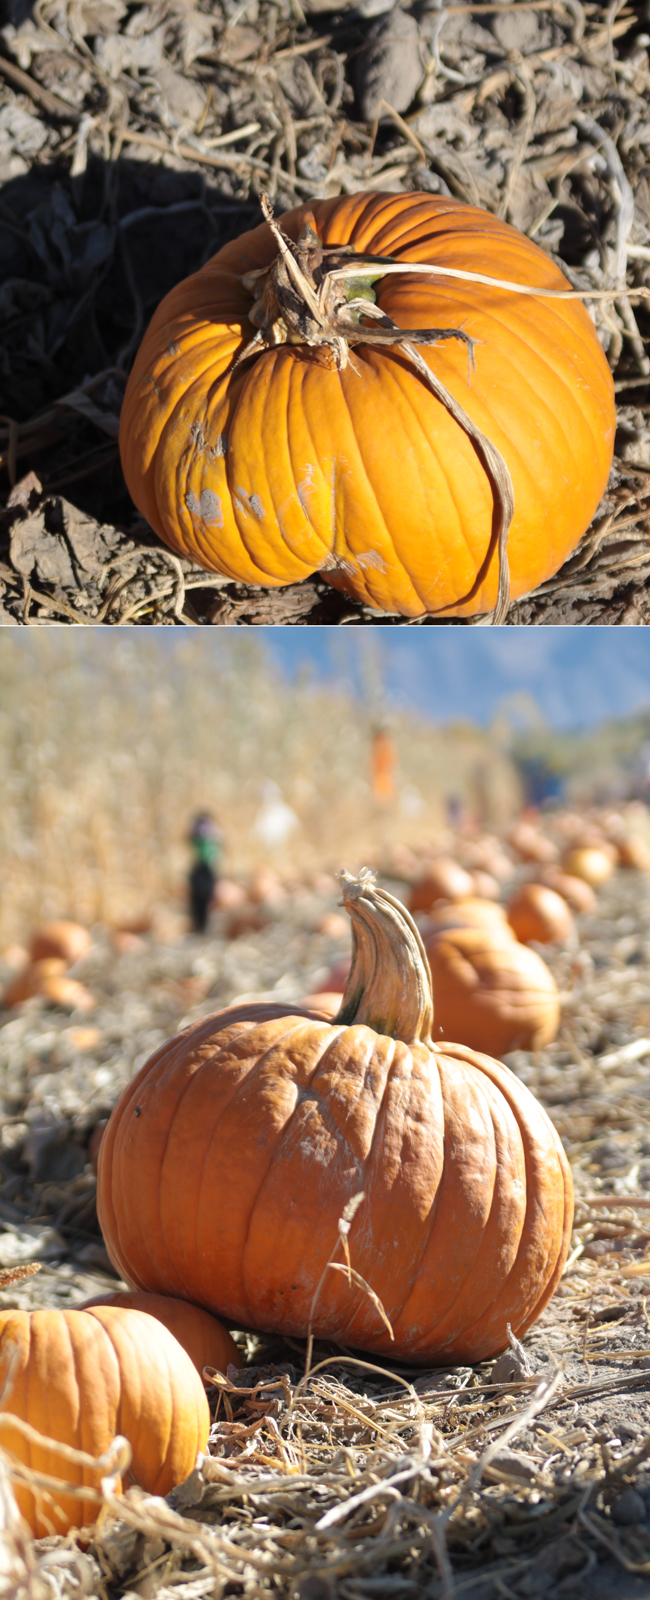 snapshot of pumpkin in patch; photo of pumpkin taken so you can see the row of pumpkins behind it as well